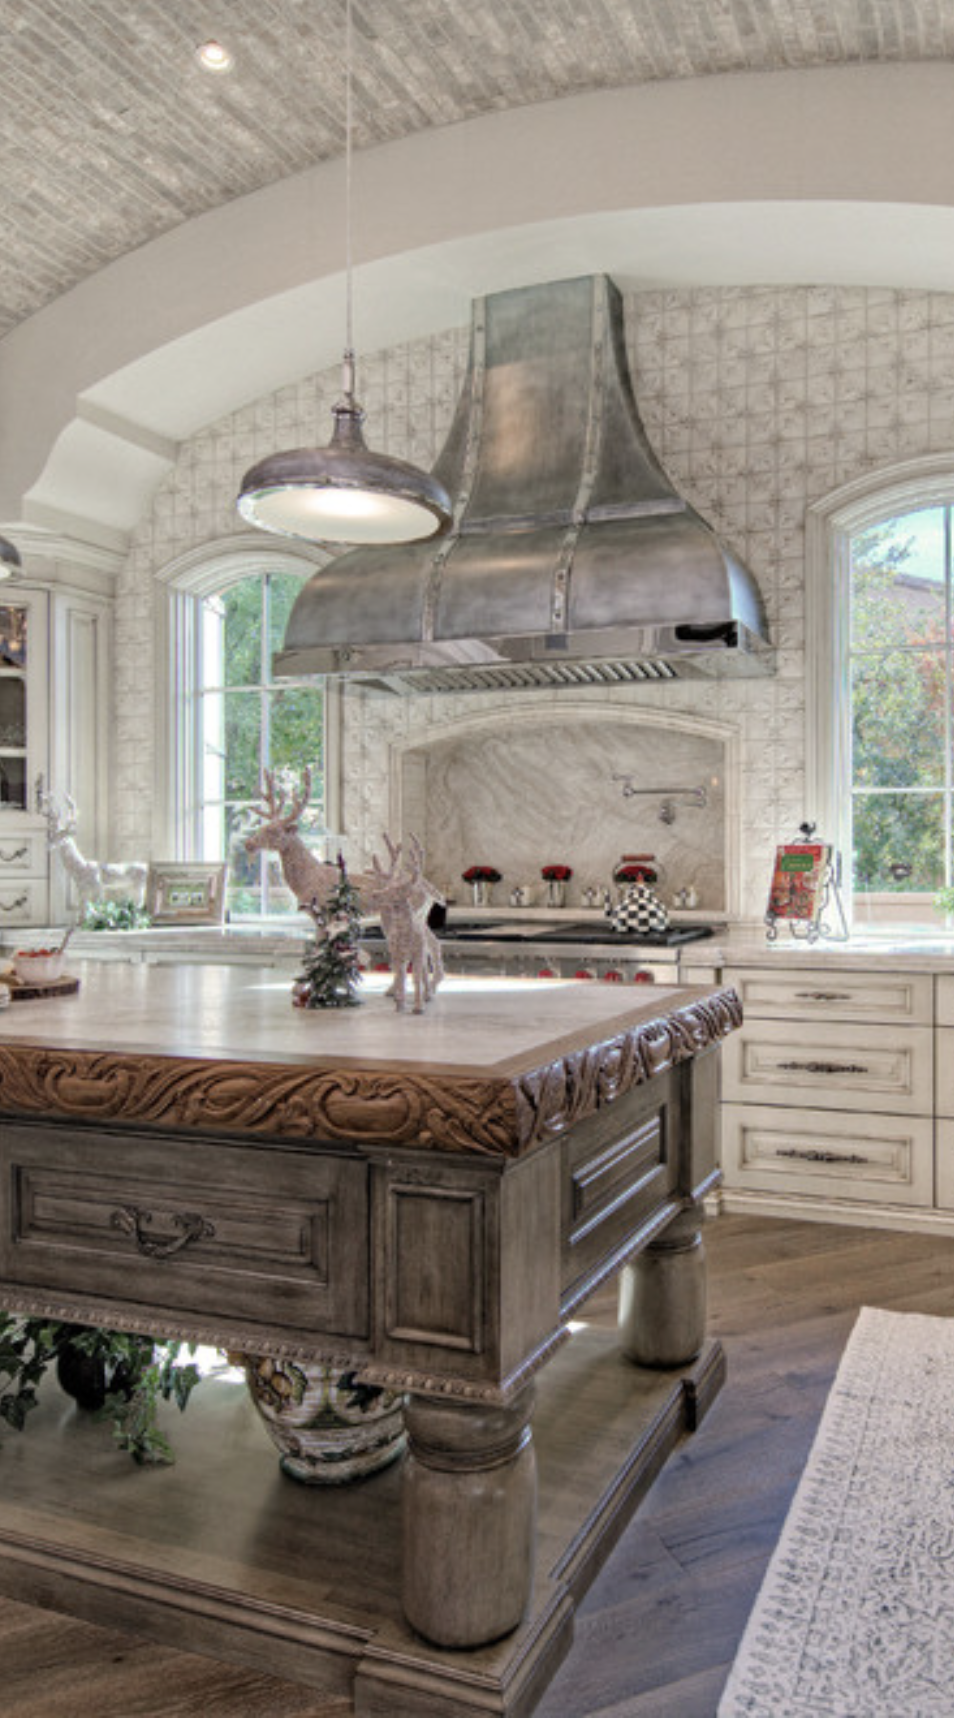 Old World Kitchen With Their Large Cooking Hearths Or